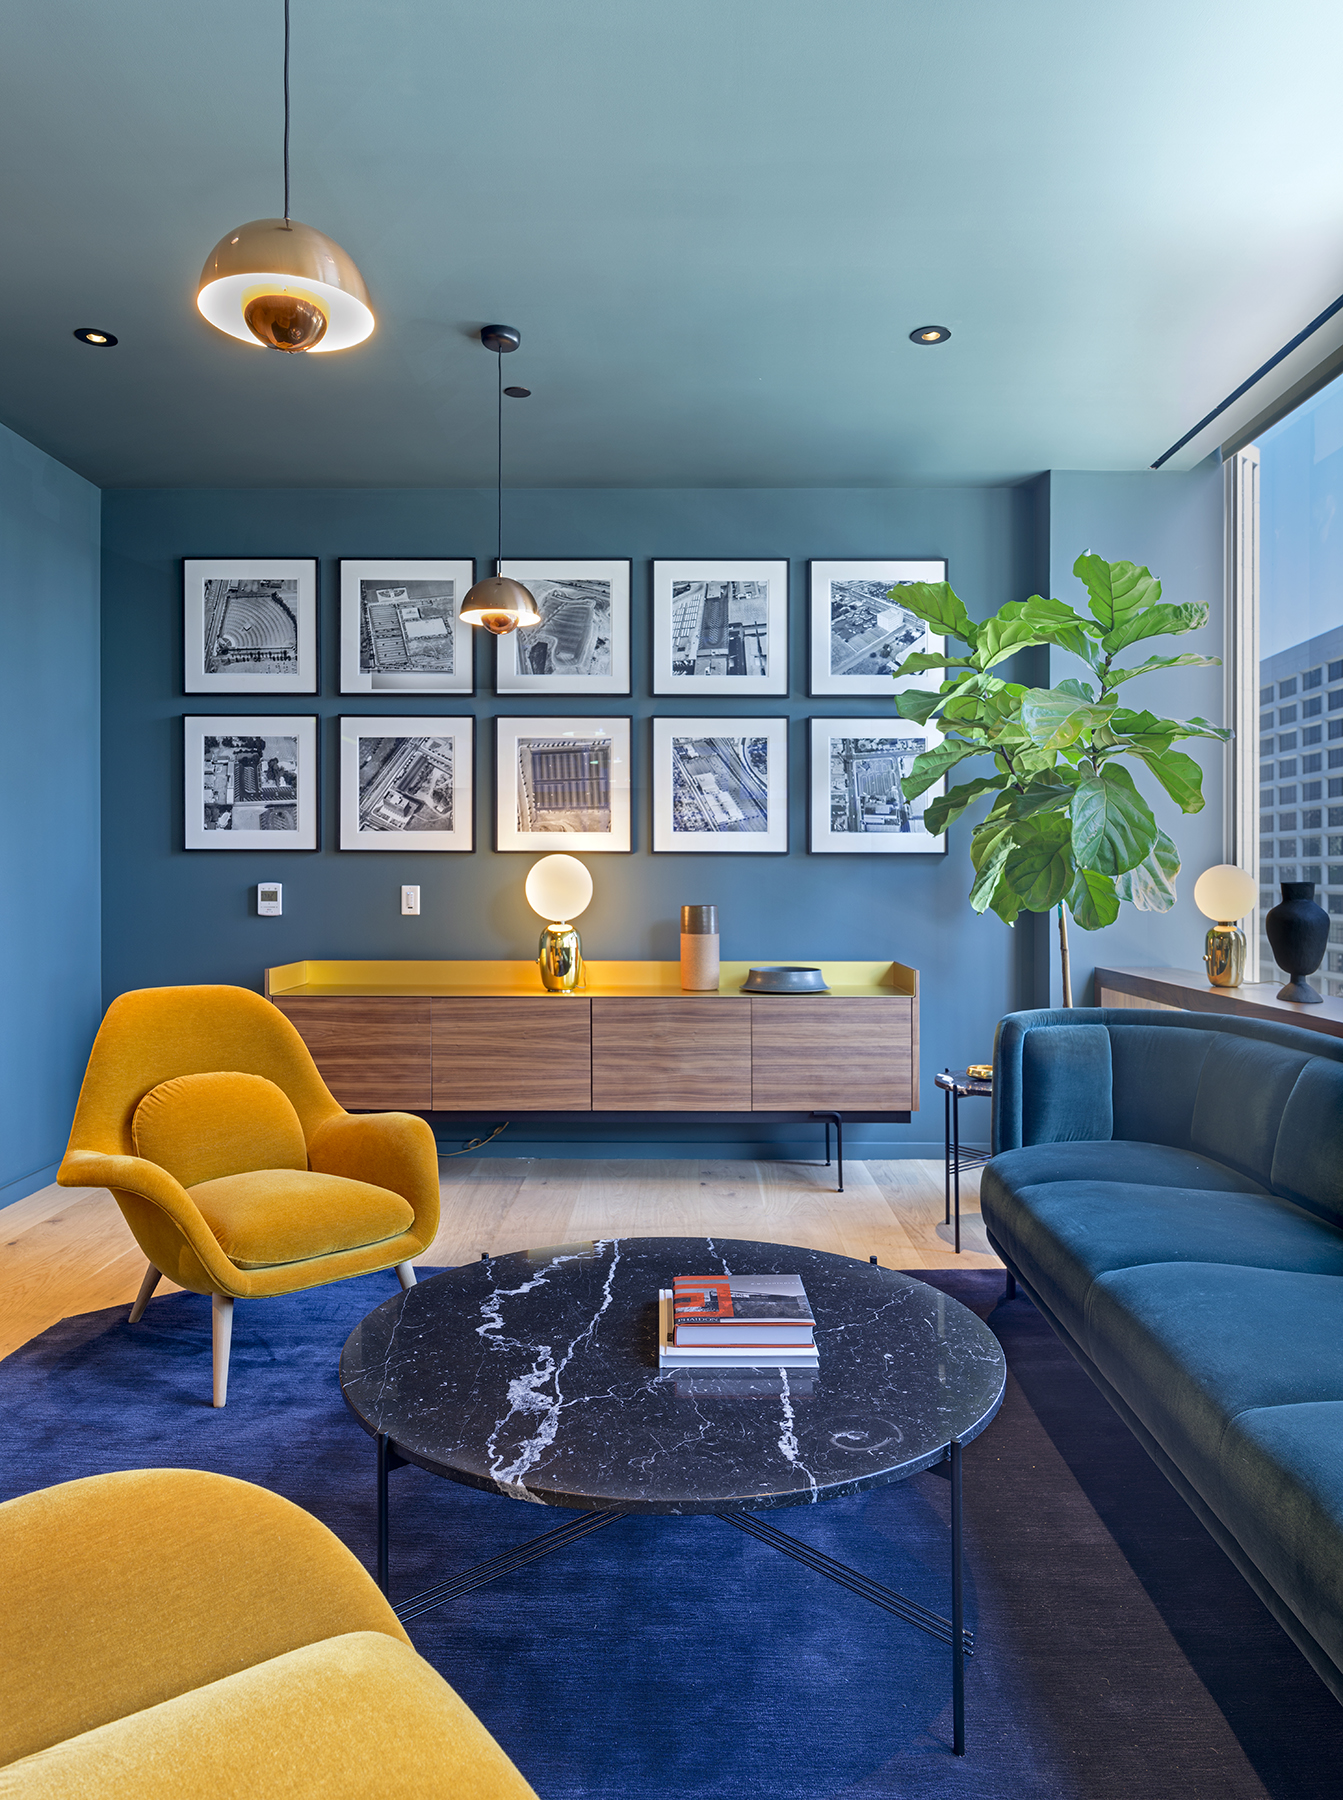 Check Out The Best Interior Design Projects of Bestor Architecture! design projects Check Out The Best Interior Design Projects of Bestor Architecture! 6 1